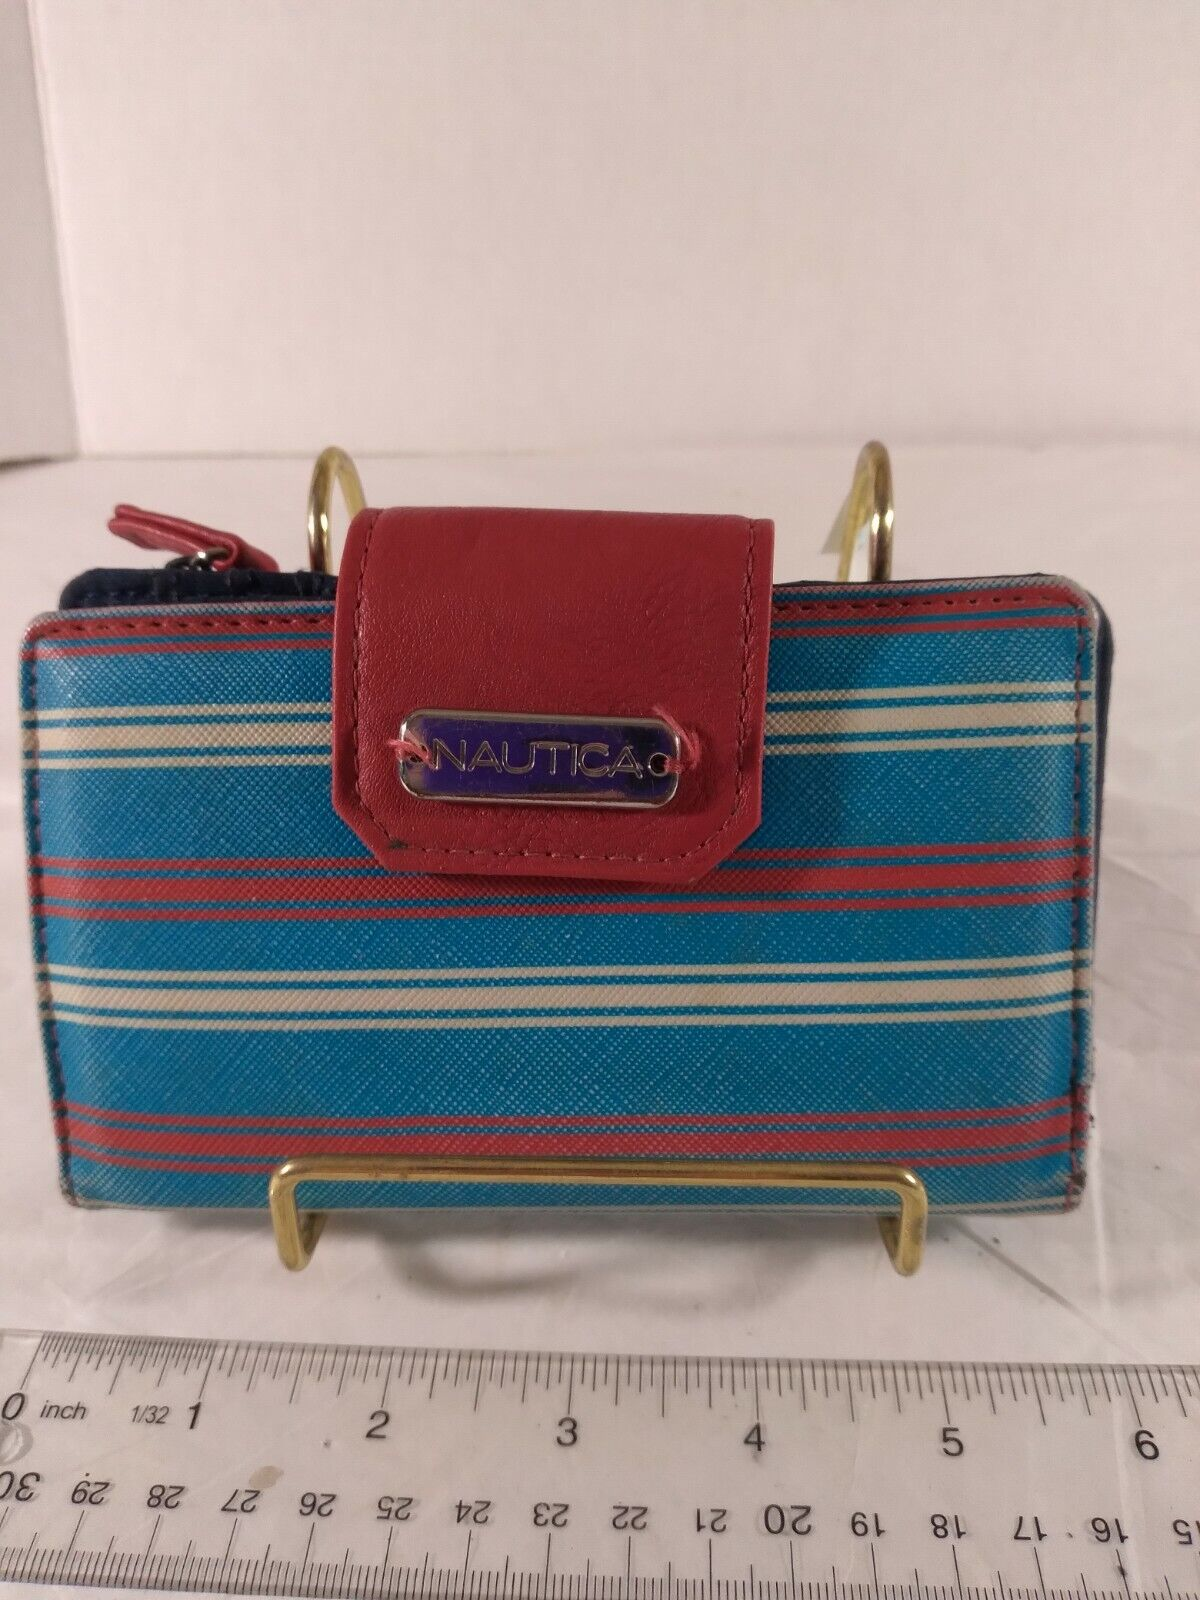 Nautica Wallet Red White Blue Stripes RFID Protection Inside Pockets & Zipper...